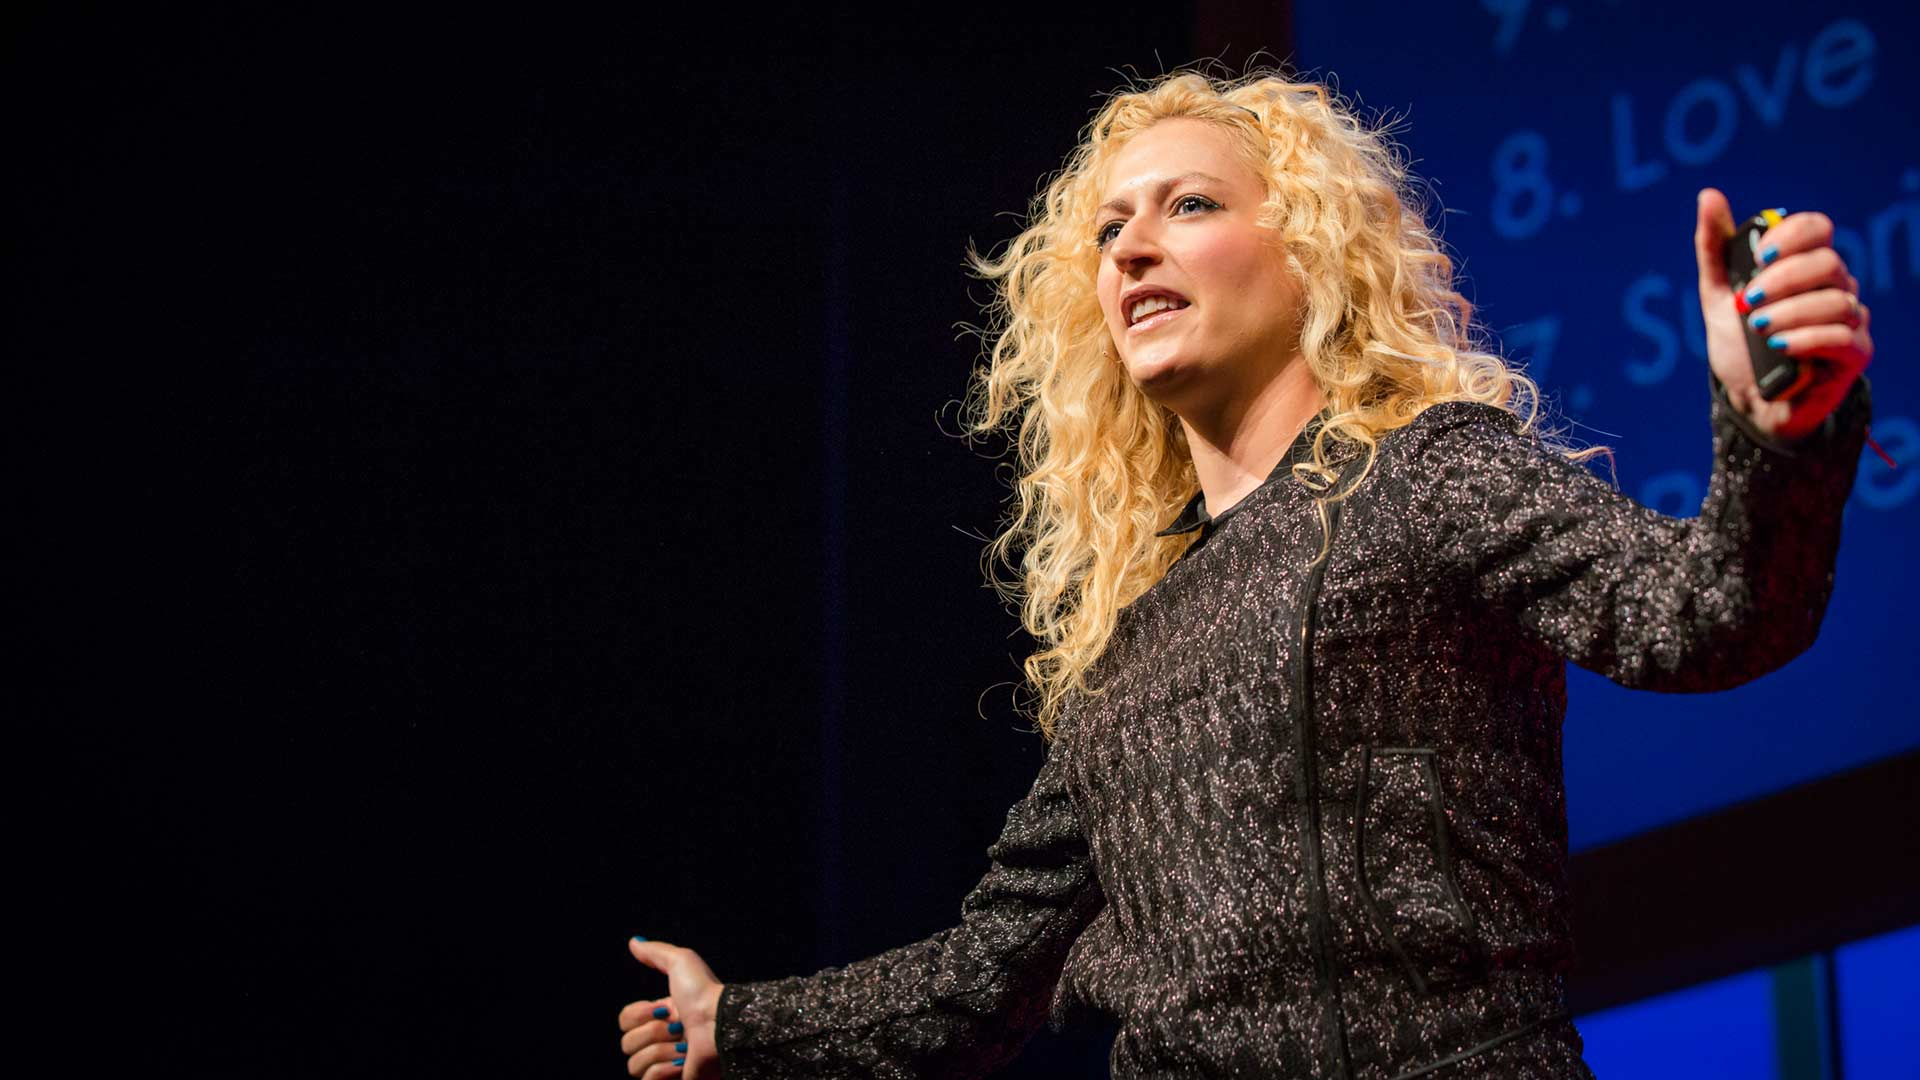 Jane McGonigal: Massively multi-player… thumb-wrestling? thumbnail